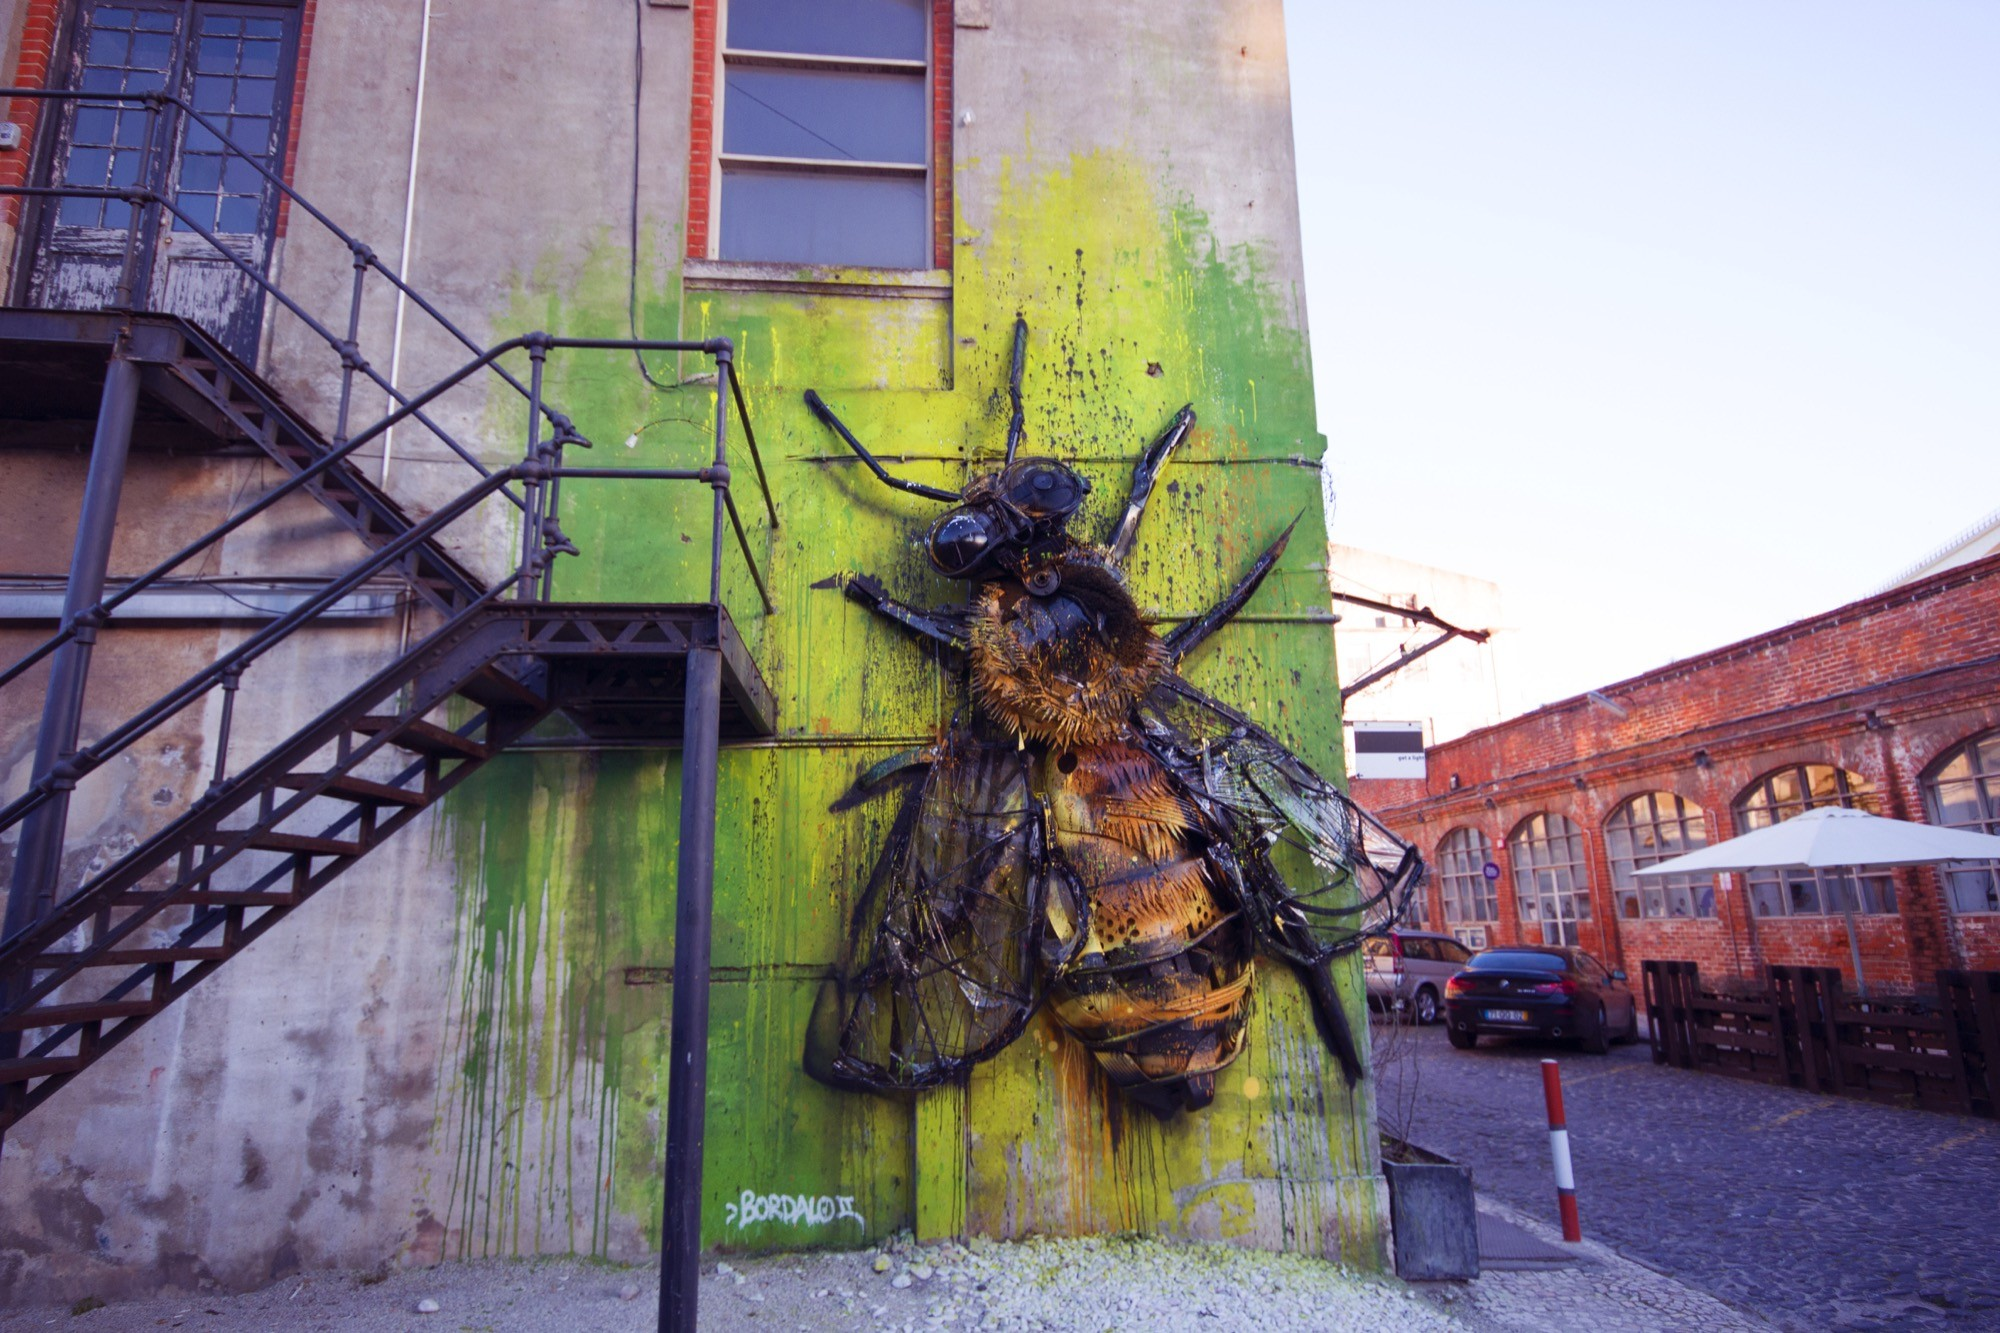 bee installation by bordalo ii in lisbon portugal streetartnews streetartnews. Black Bedroom Furniture Sets. Home Design Ideas